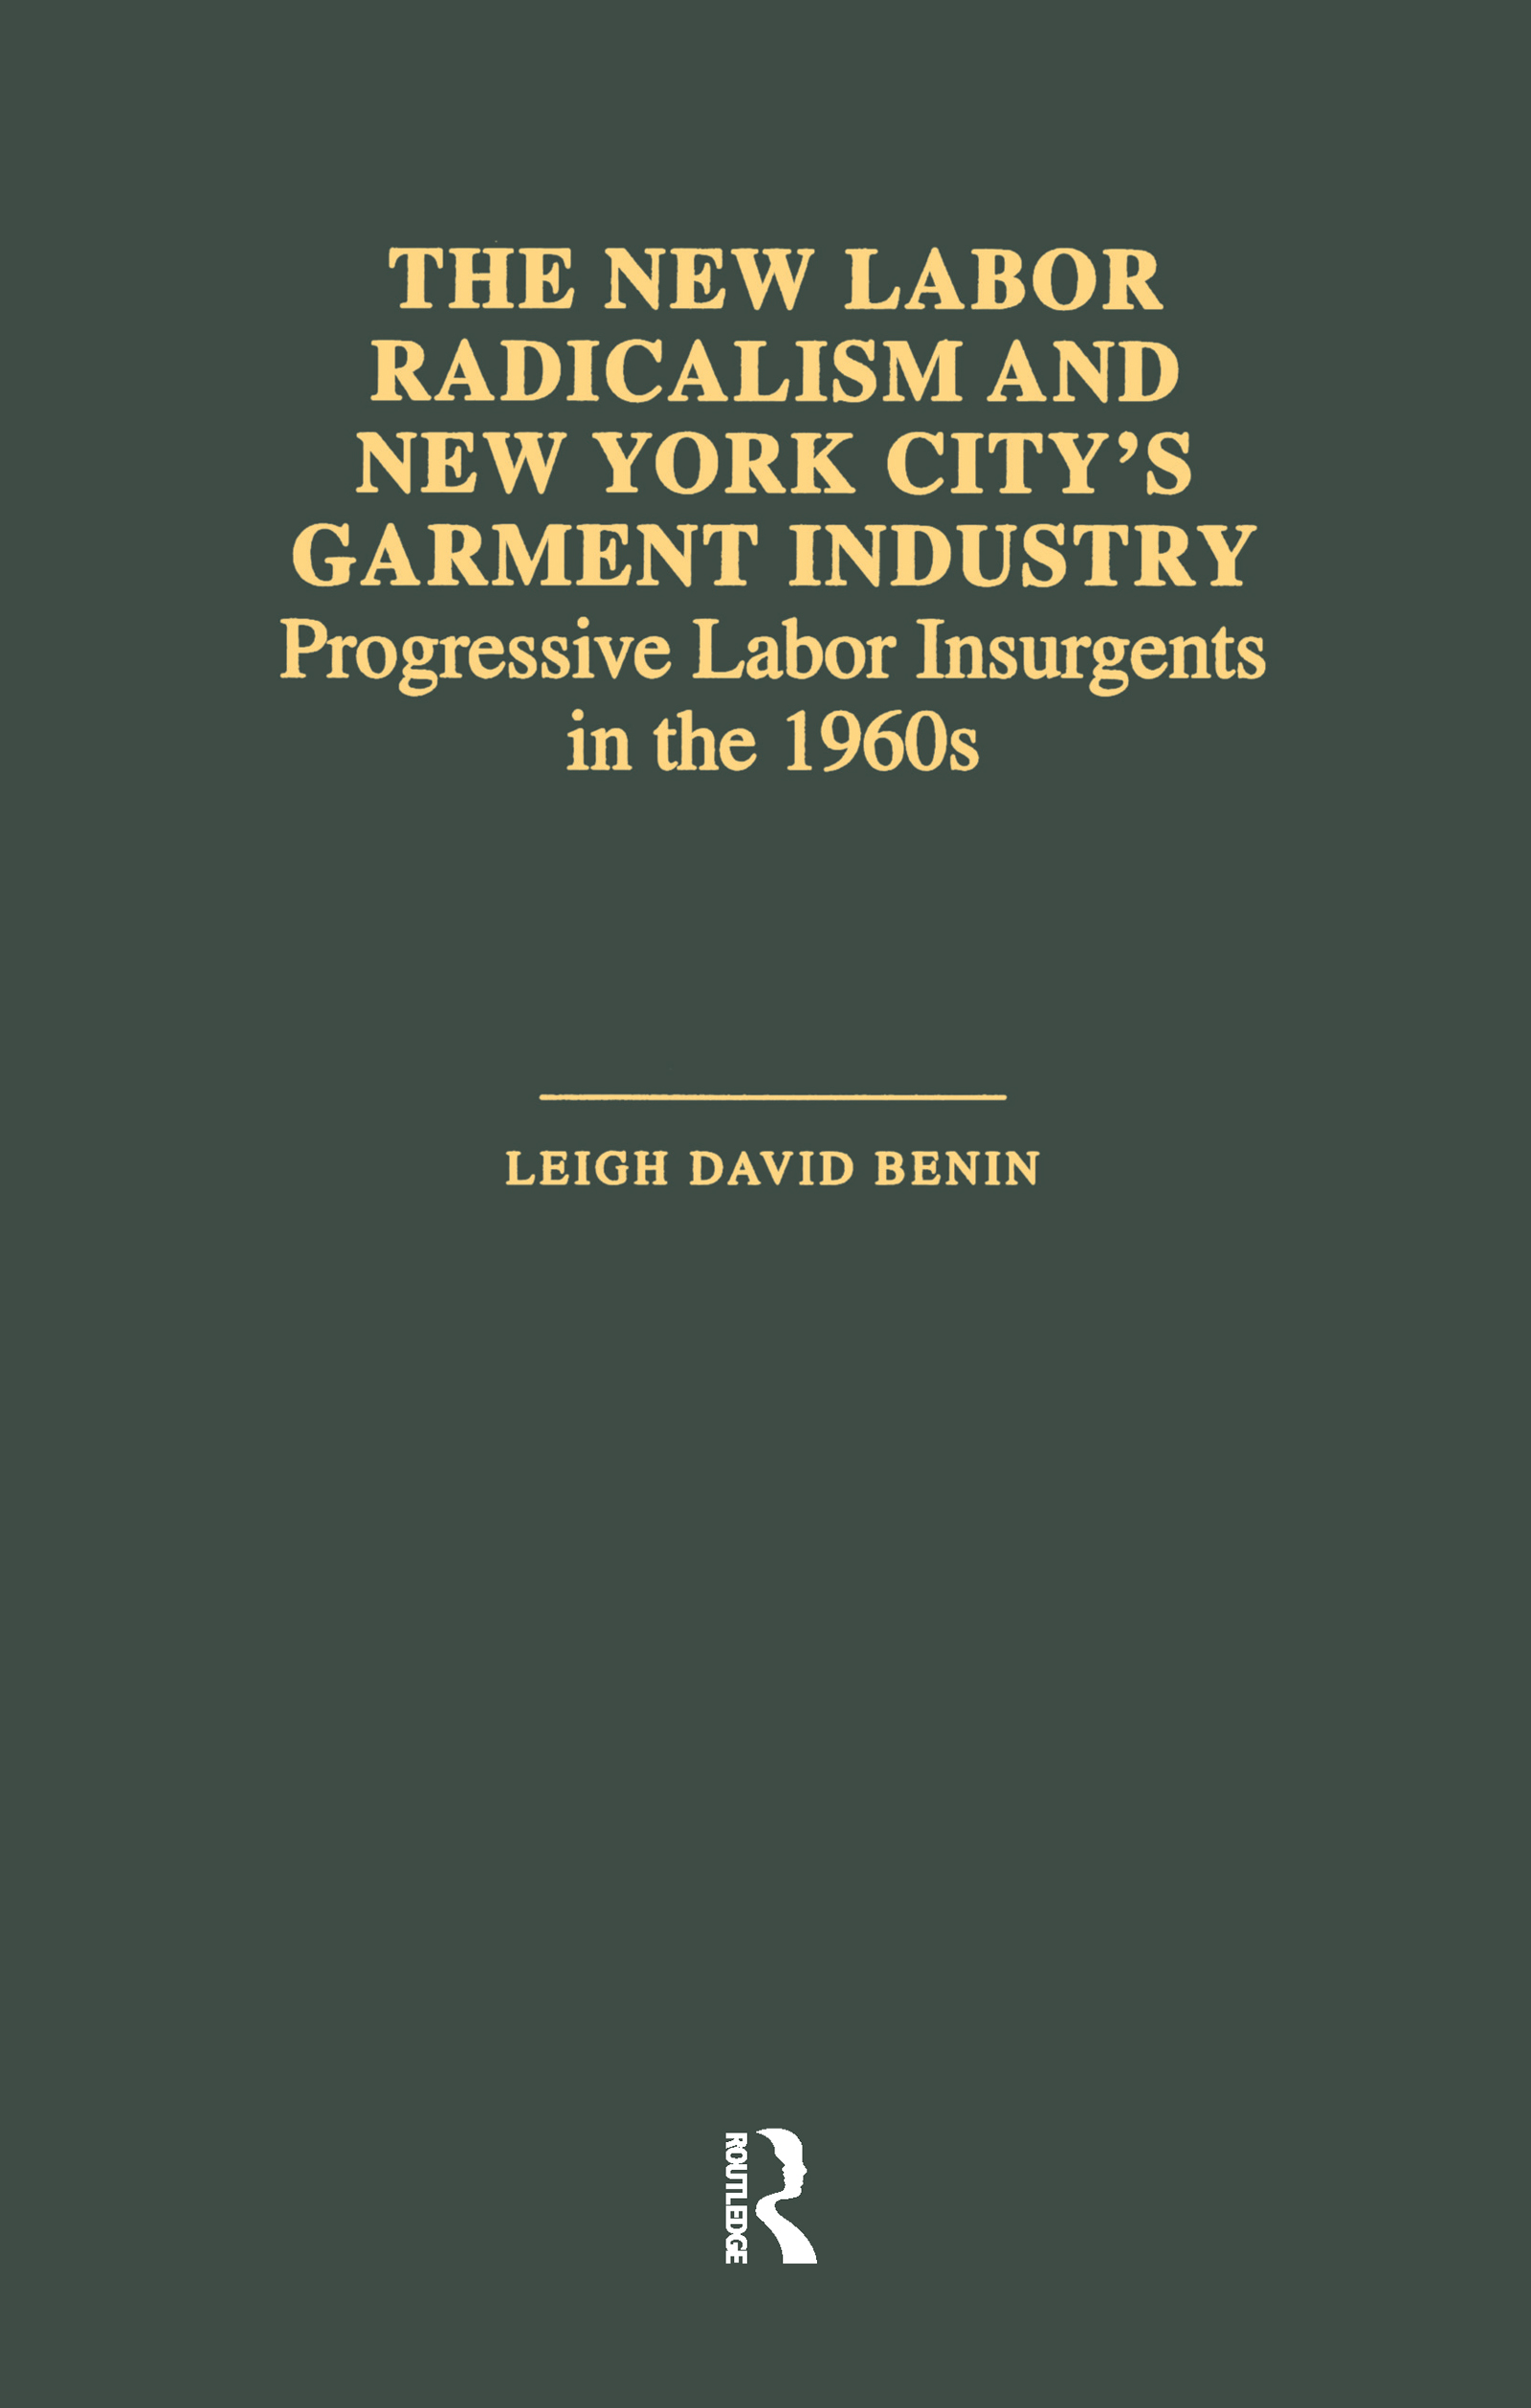 The New Labor Radicalism and New York City's Garment Industry: Progressive Labor Insurgents During the 1960s, 1st Edition (Hardback) book cover